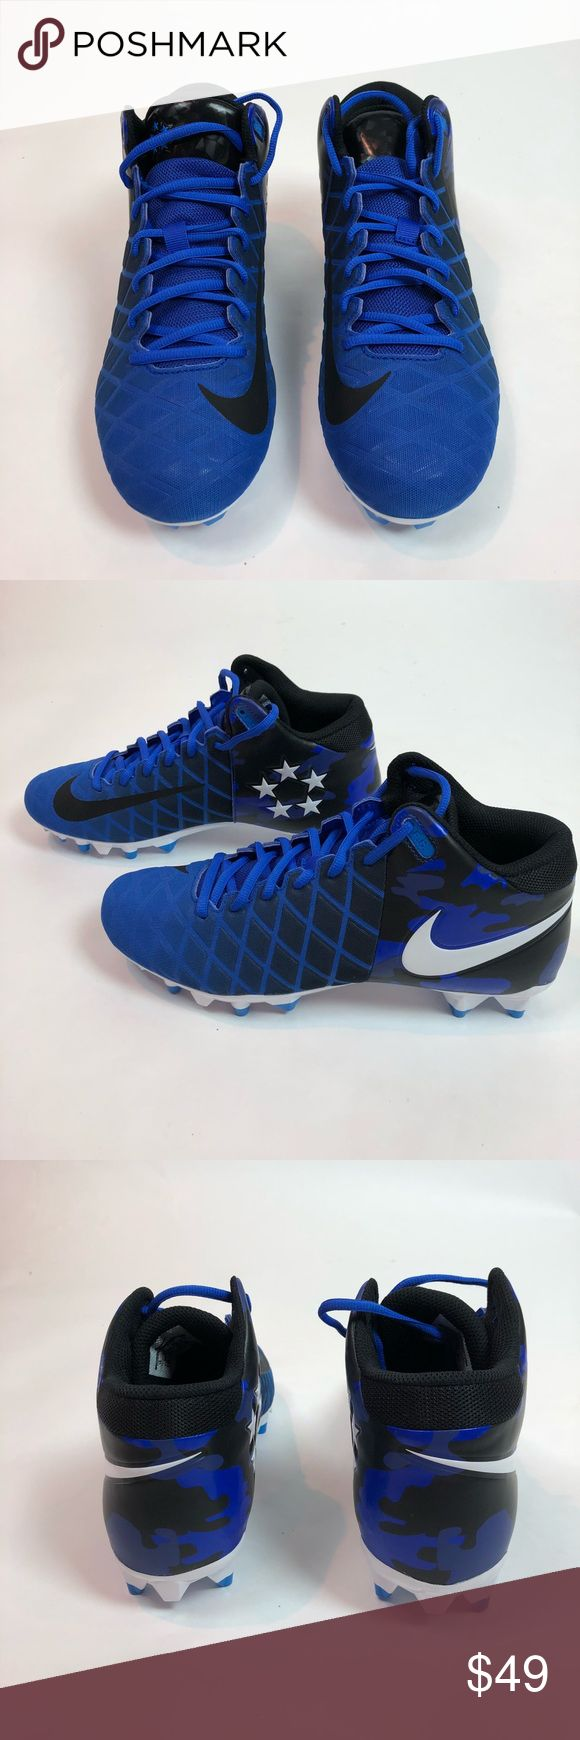 Nike Mens Football Cleats Field General Pro Sz 10 Brand new without box! Nike men's football cleats. Nike Shoes Athletic Shoes